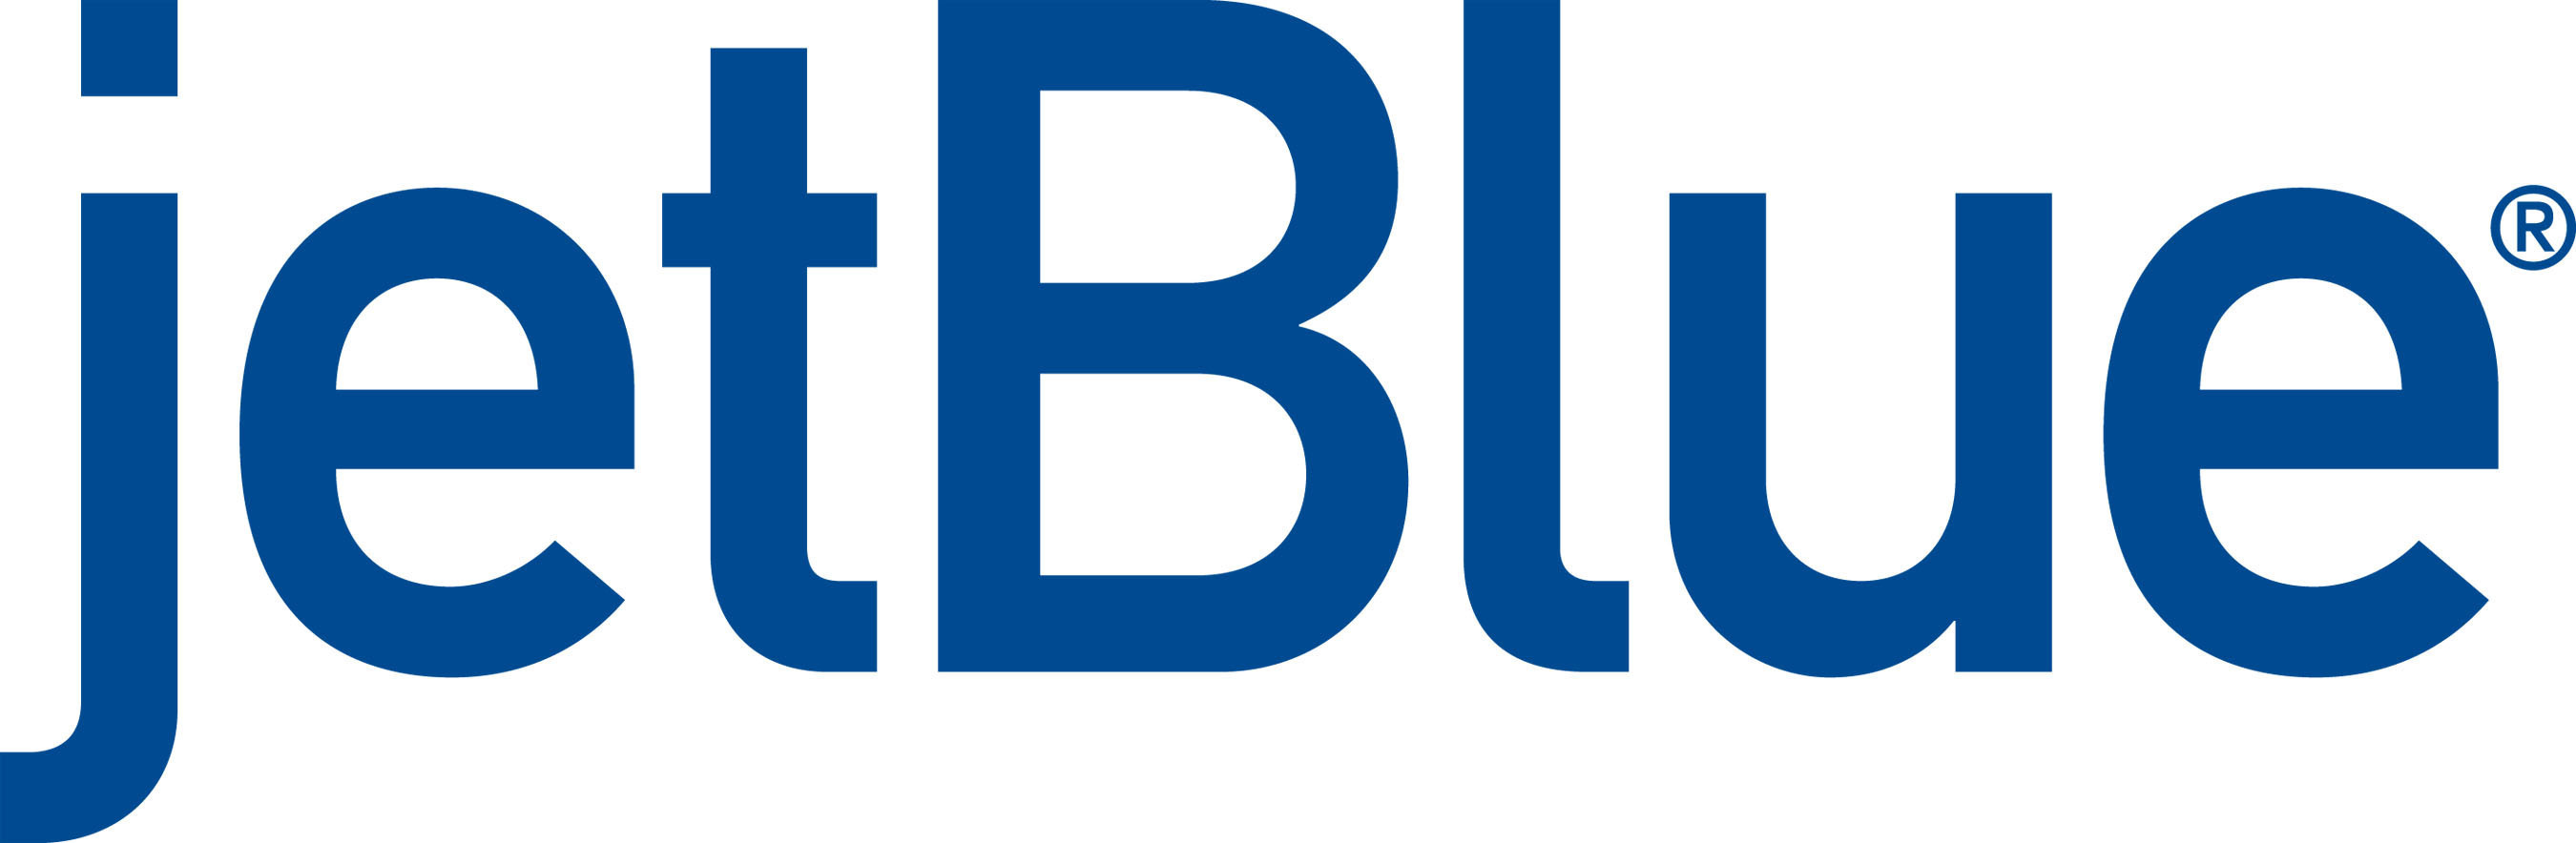 JetBlue Airways Announces Bags VIP - A New Concierge Service Providing Hand-Delivery of Luggage From the Airport to Your Doorstep